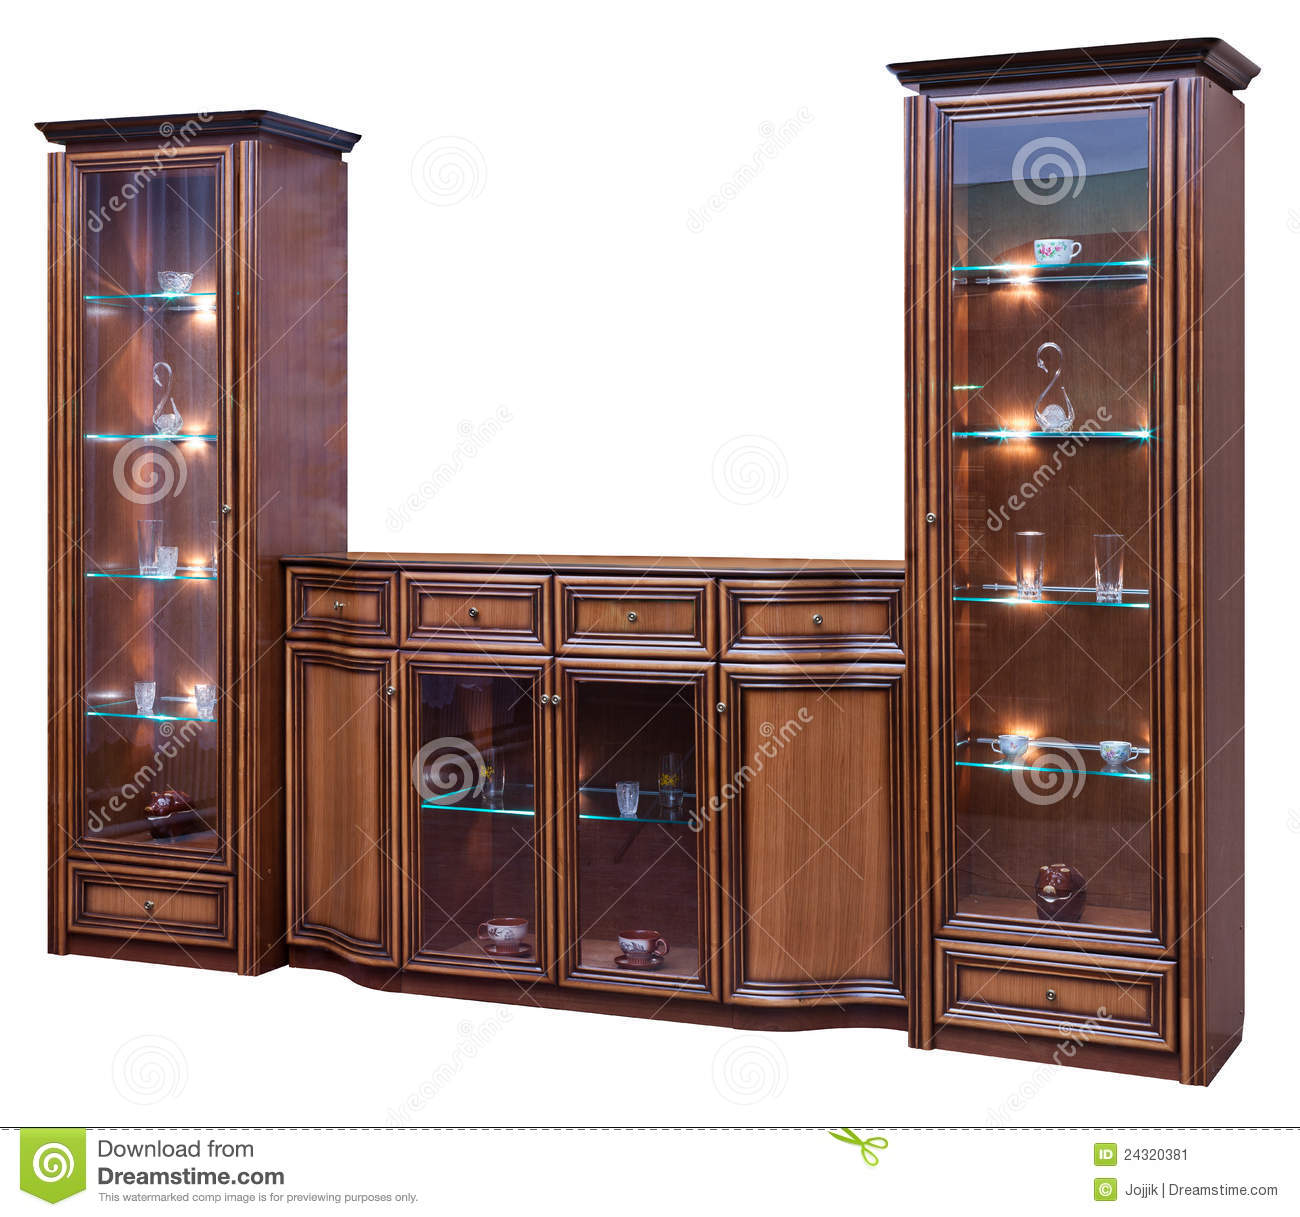 wooden cupboard with glass doors stock image - Cabinet With Glass Doors